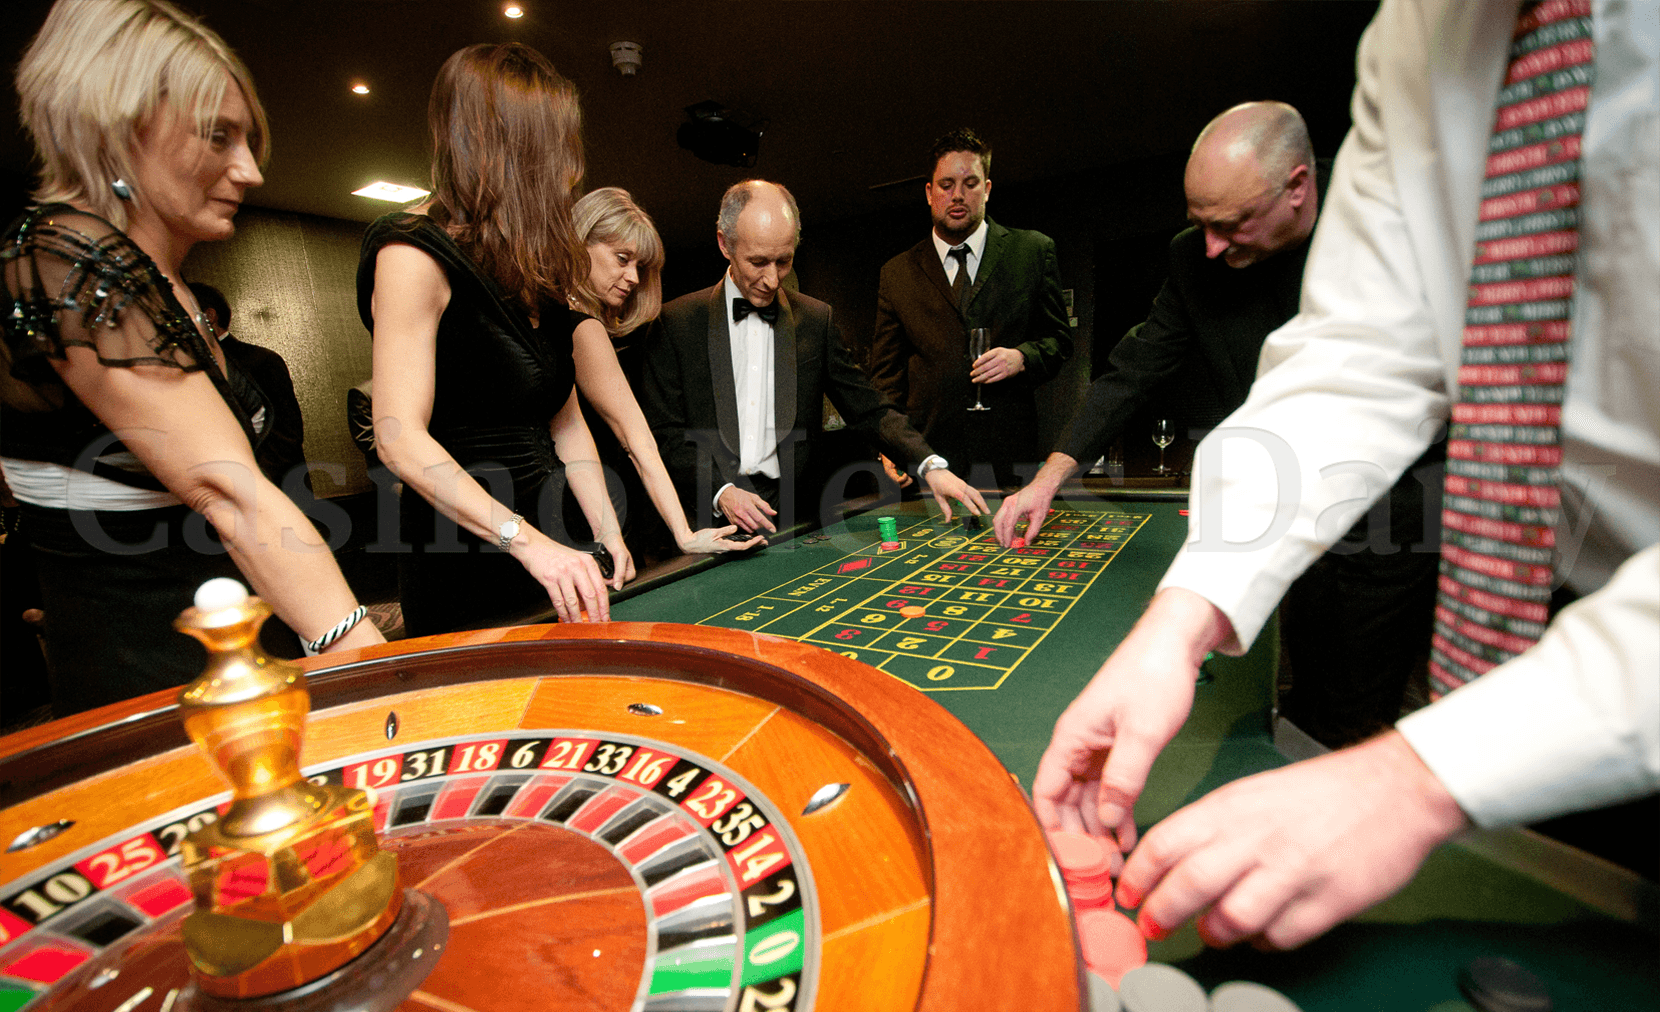 How to beat online casino at roulette? - Gametoplist